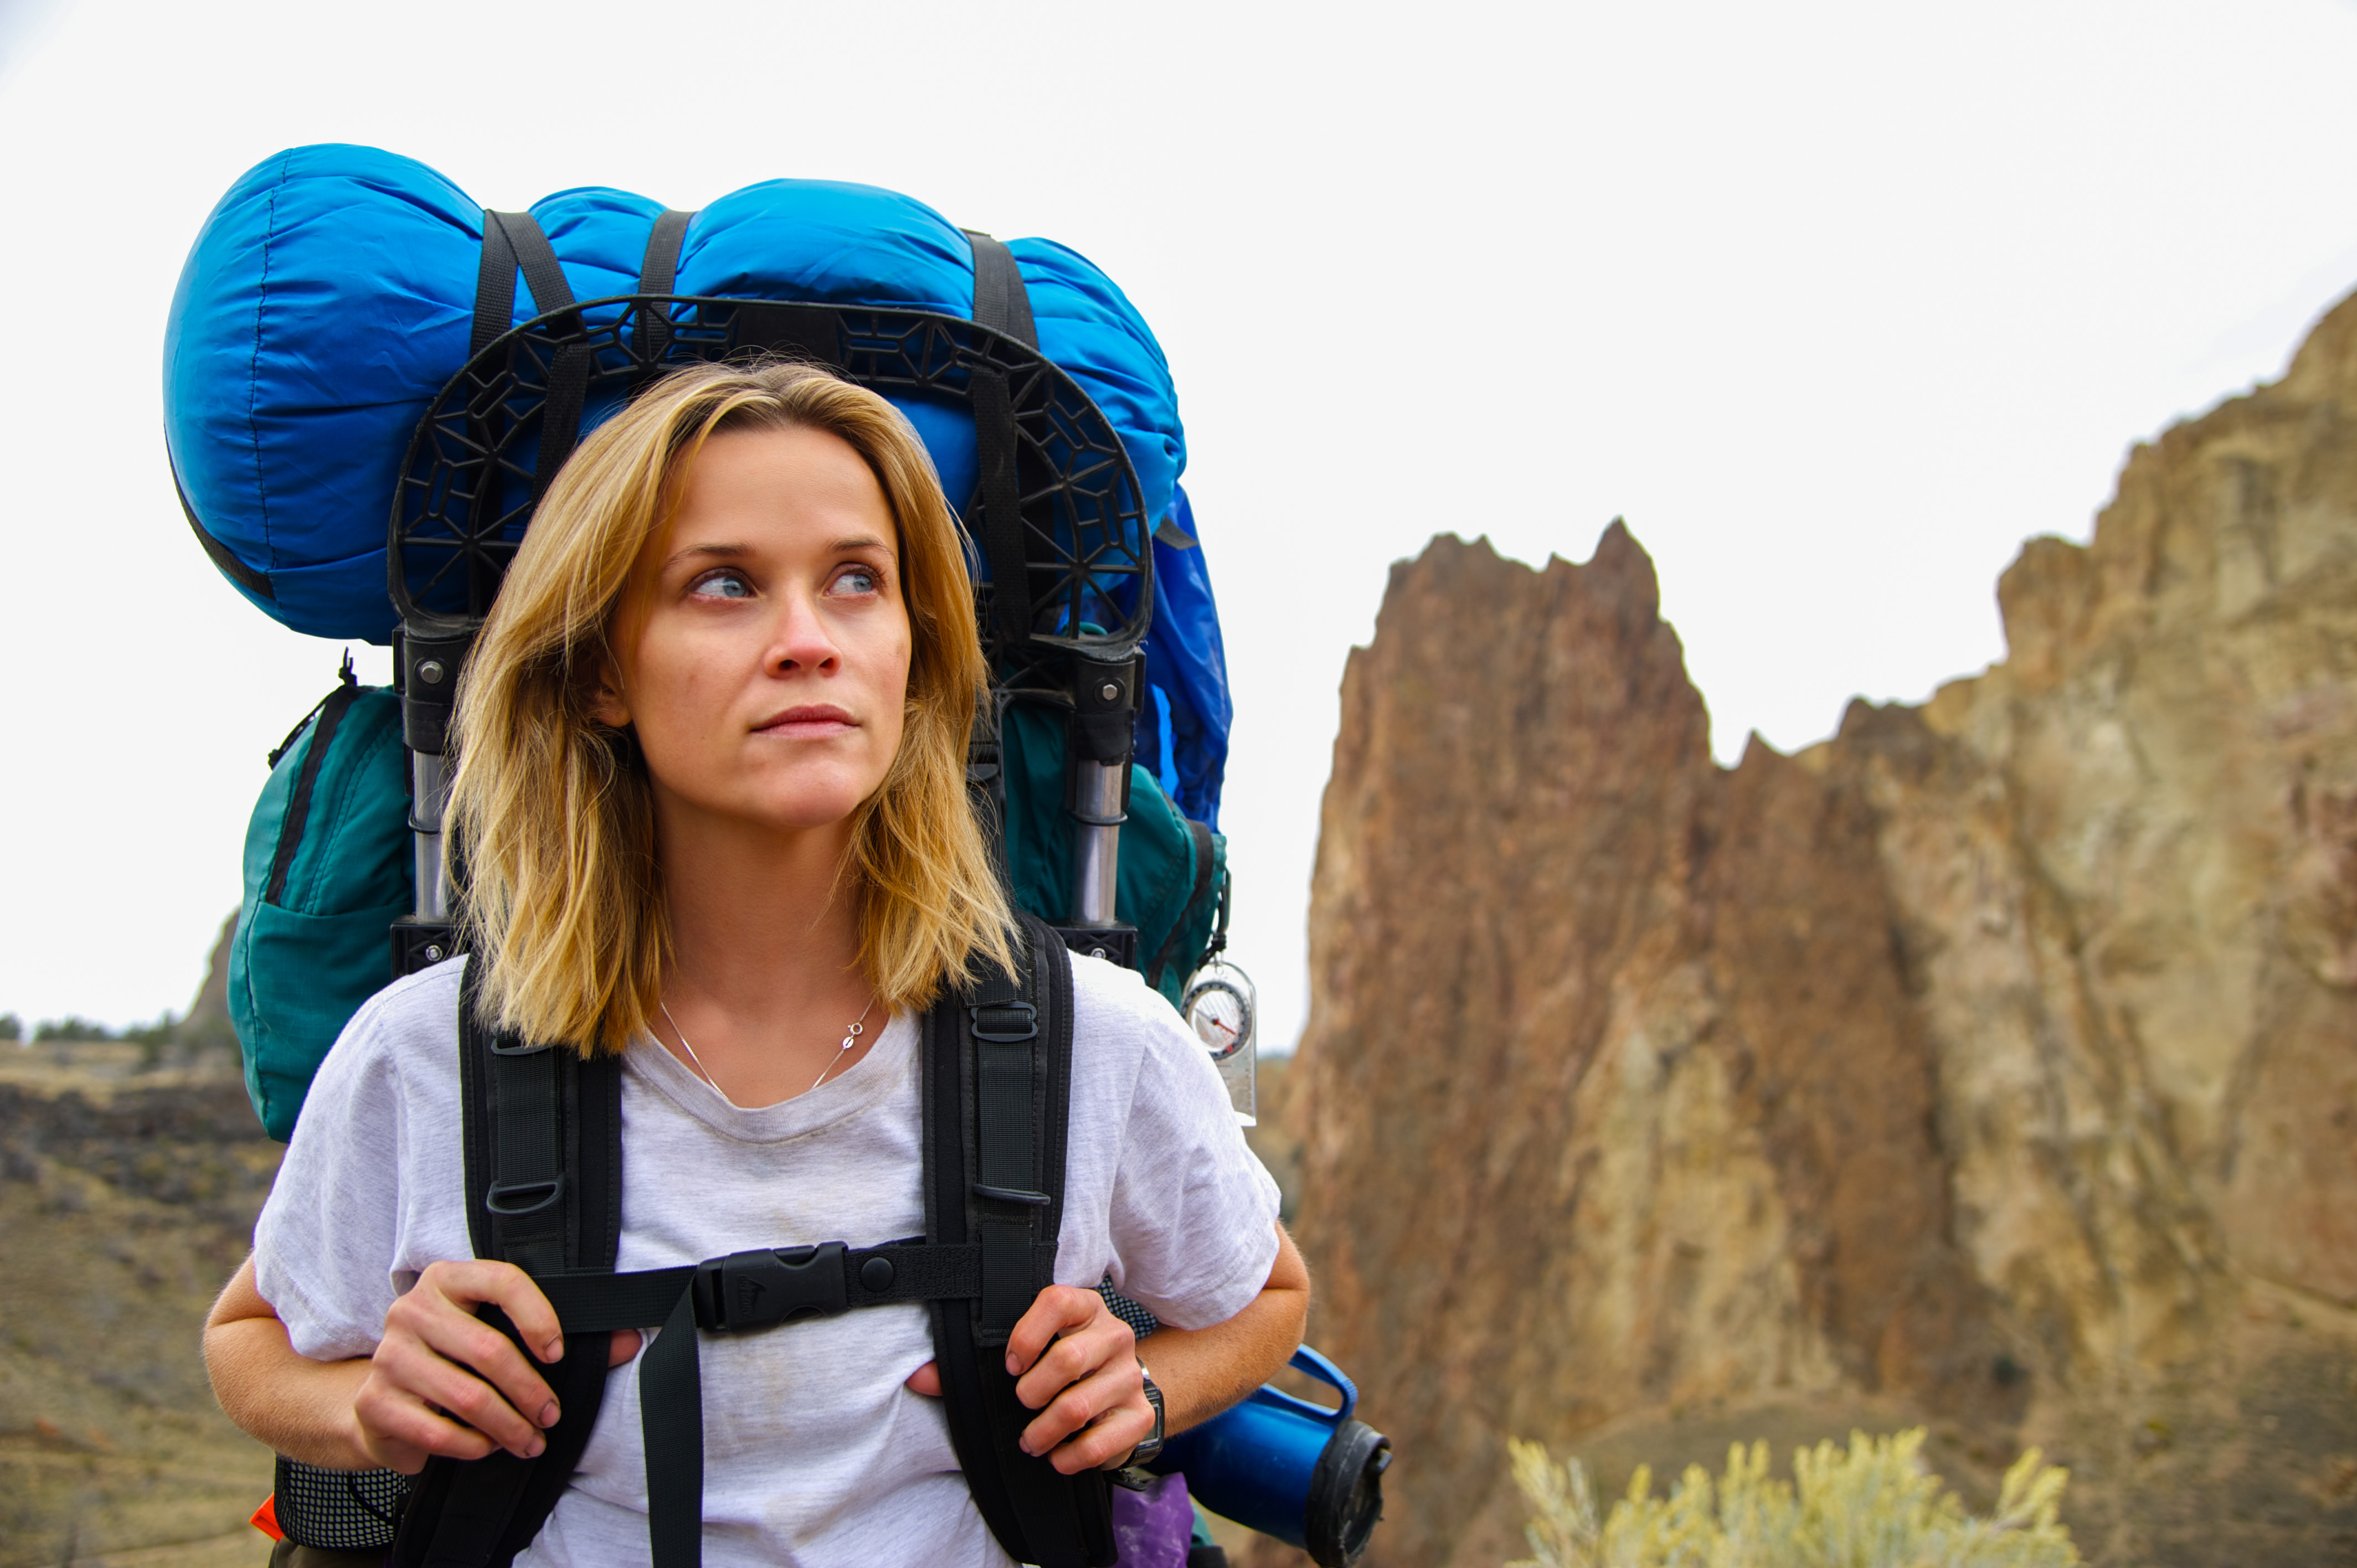 Reese Witherspoon takes 'Wild' hike of inspiration